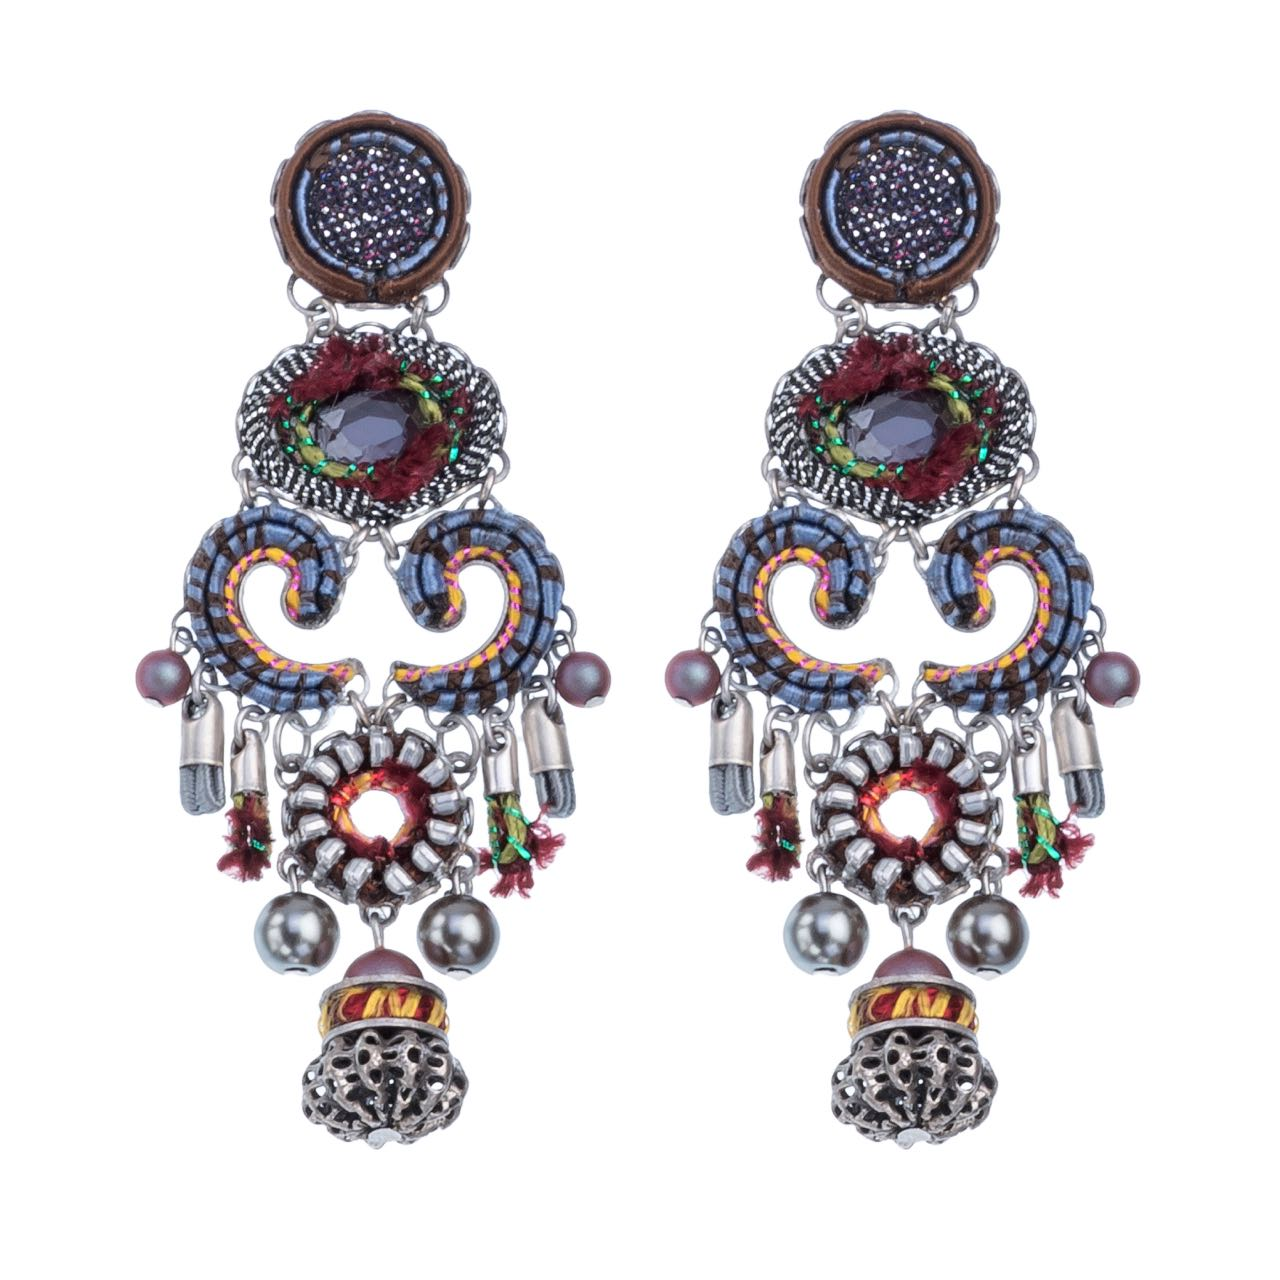 7508 Ayala Bar Earrings Resonance Buy Online